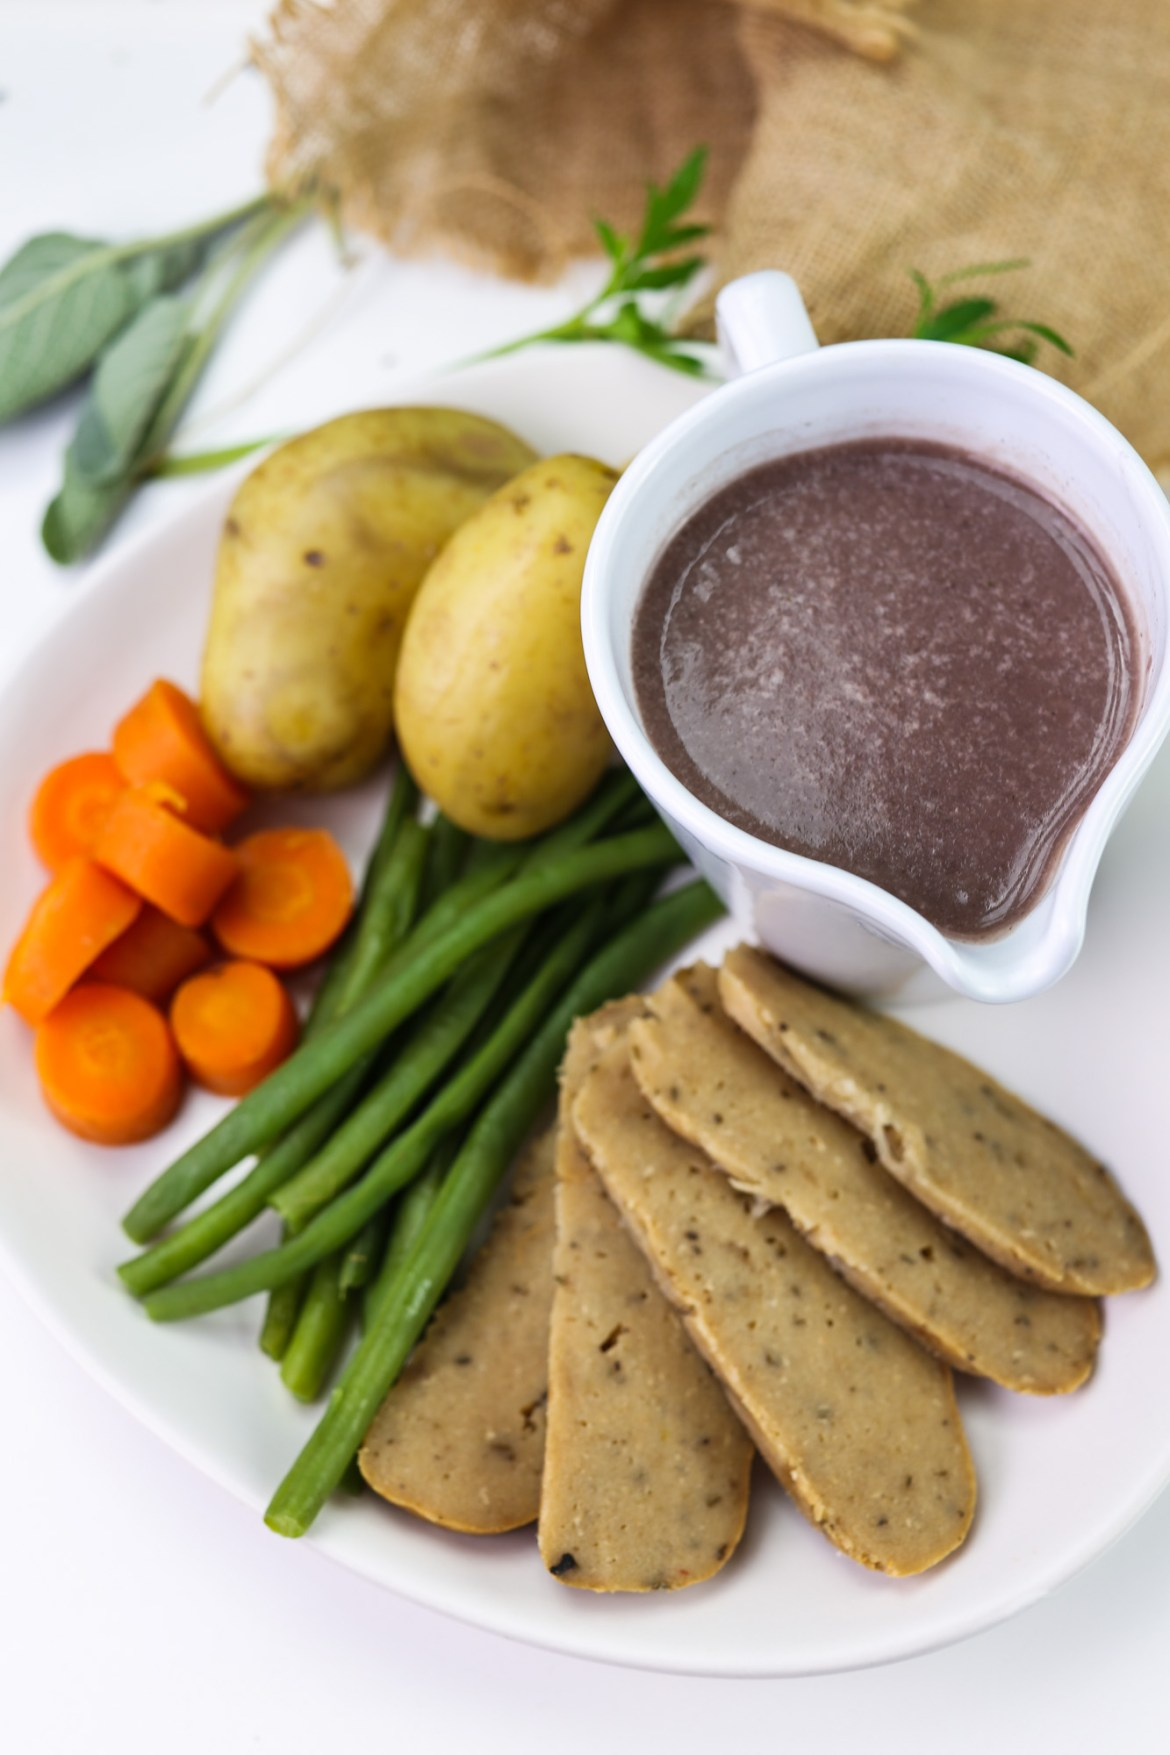 Turkey(less) roast, vegan and gluten free meat alternative sliced on a plate with steamed vegetables and gravy pot